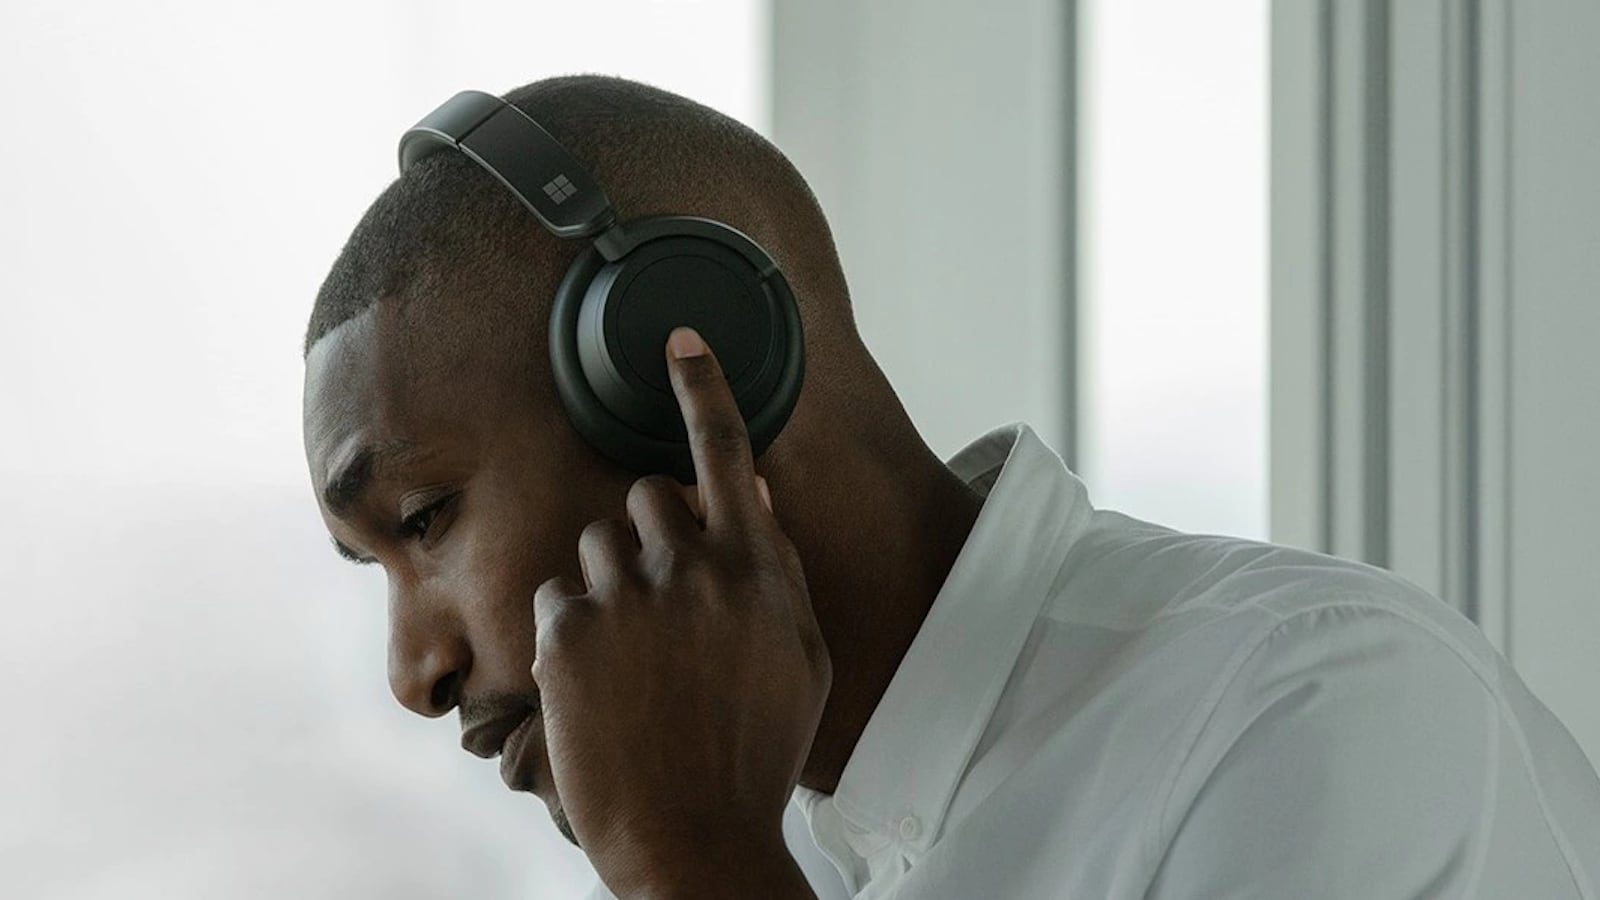 Microsoft Surface Over-Ear Headphones 2 offer 13 different levels of ambient noise control